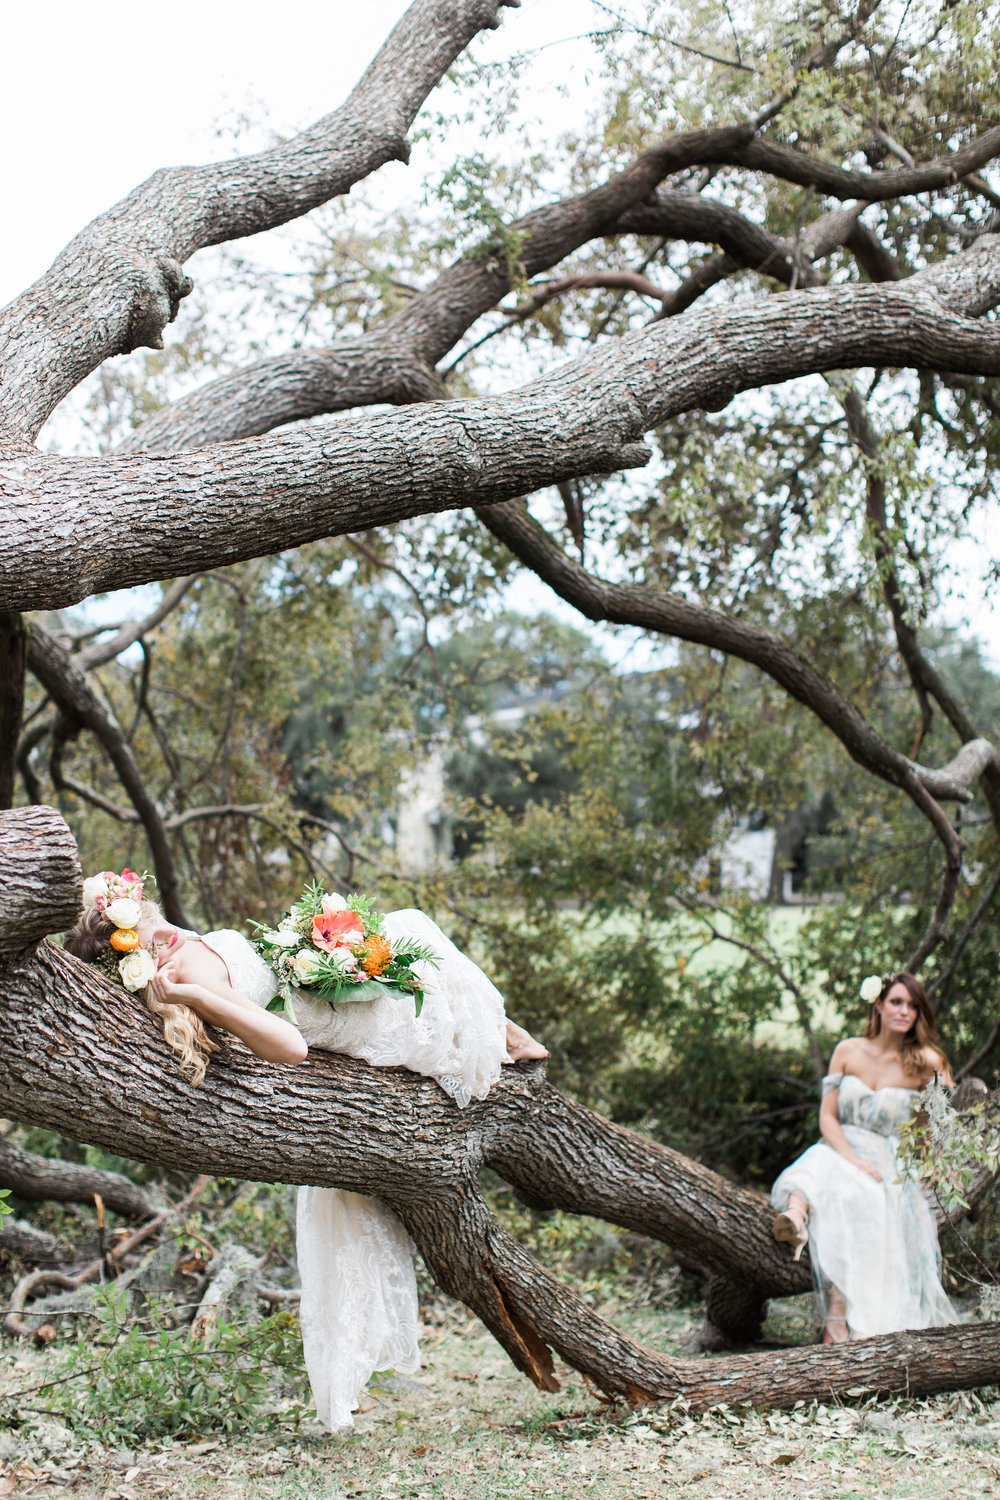 AptBPhoto_IvoryBeau_FallenTrees-fredericka-by-maggie-sottero-ivory-and-beau-savannah-bridal-boutique-savannah-wedding-dresses-savannah-wedding-florist-jenny-yoo-floral-print-bridesmaids-dresses.jpg